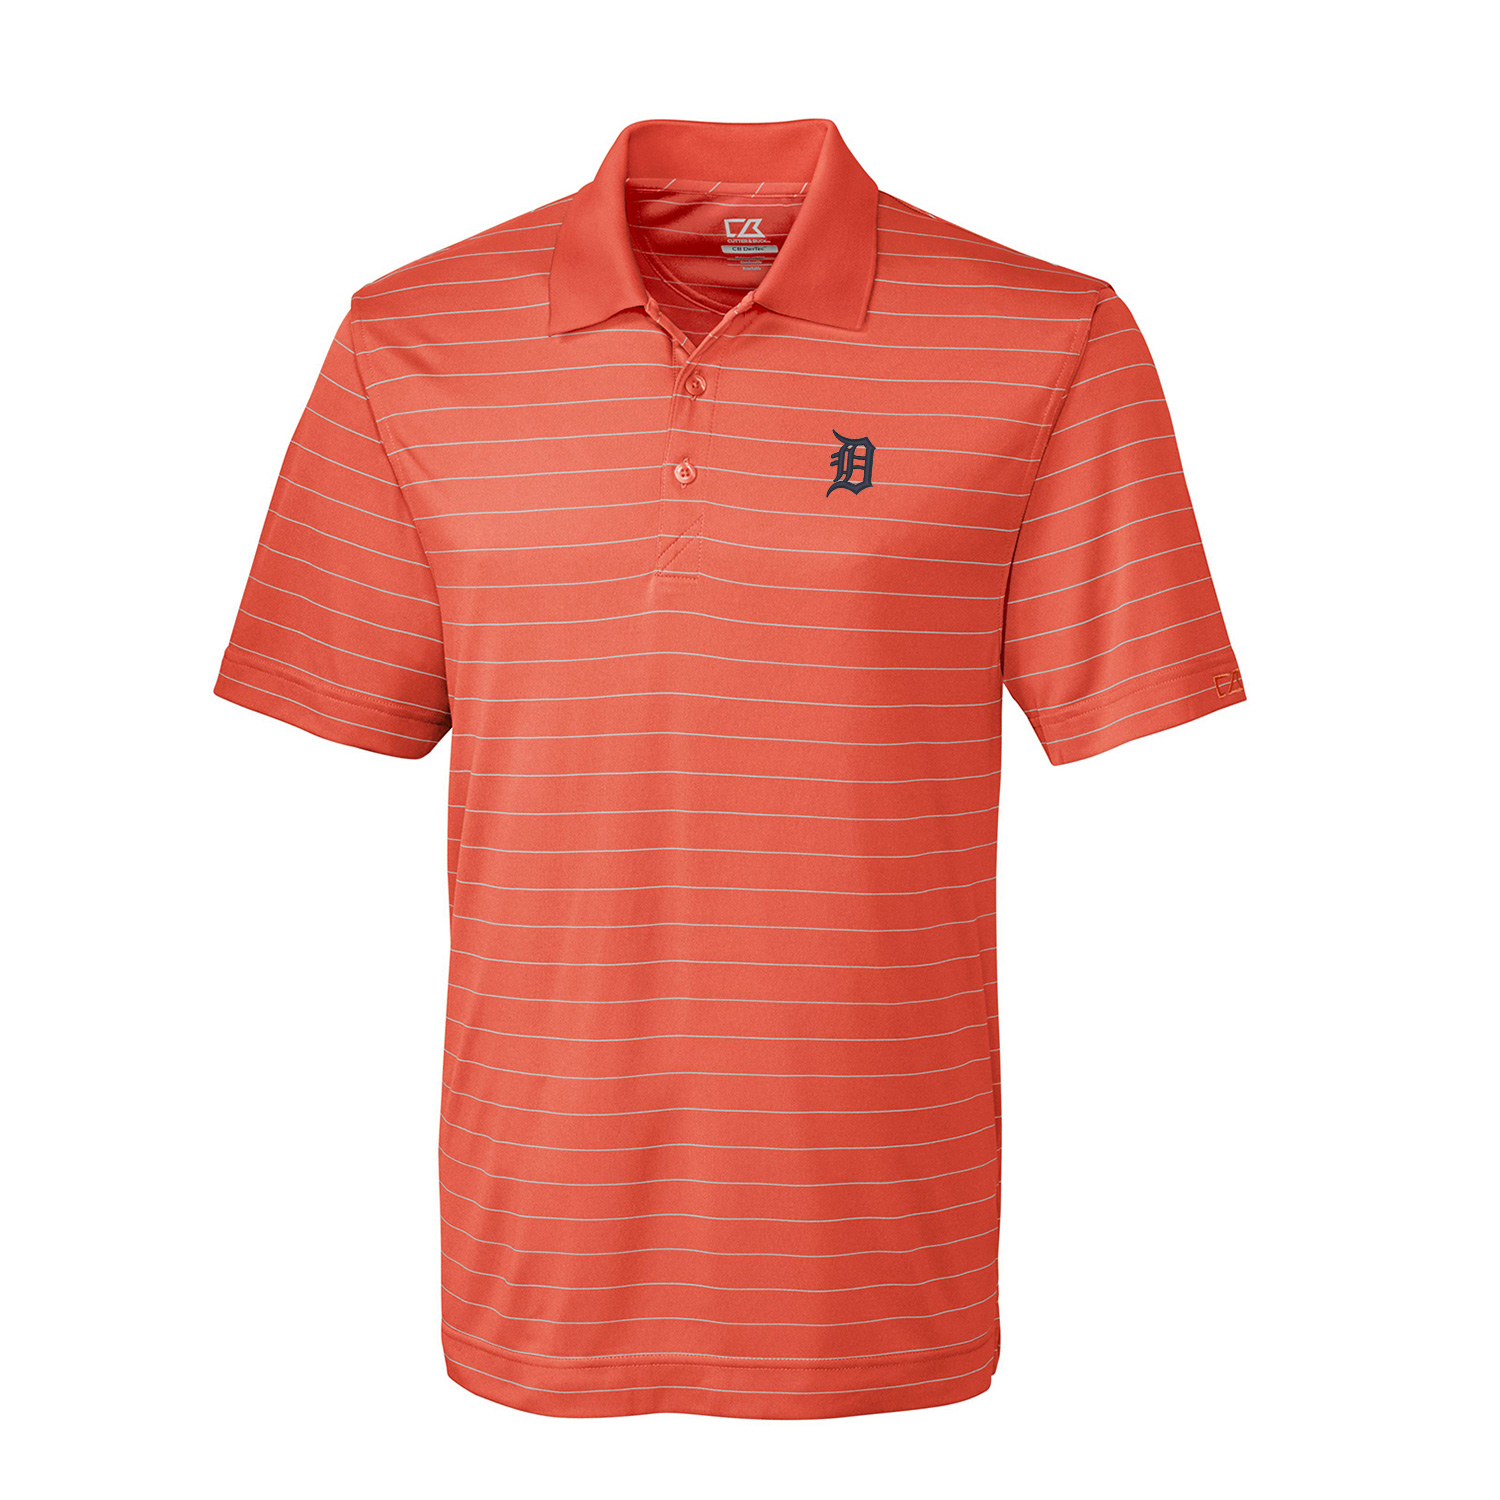 Detroit Tigers Cutter & Buck Franklin Stripe DryTec Polo - Orange/White